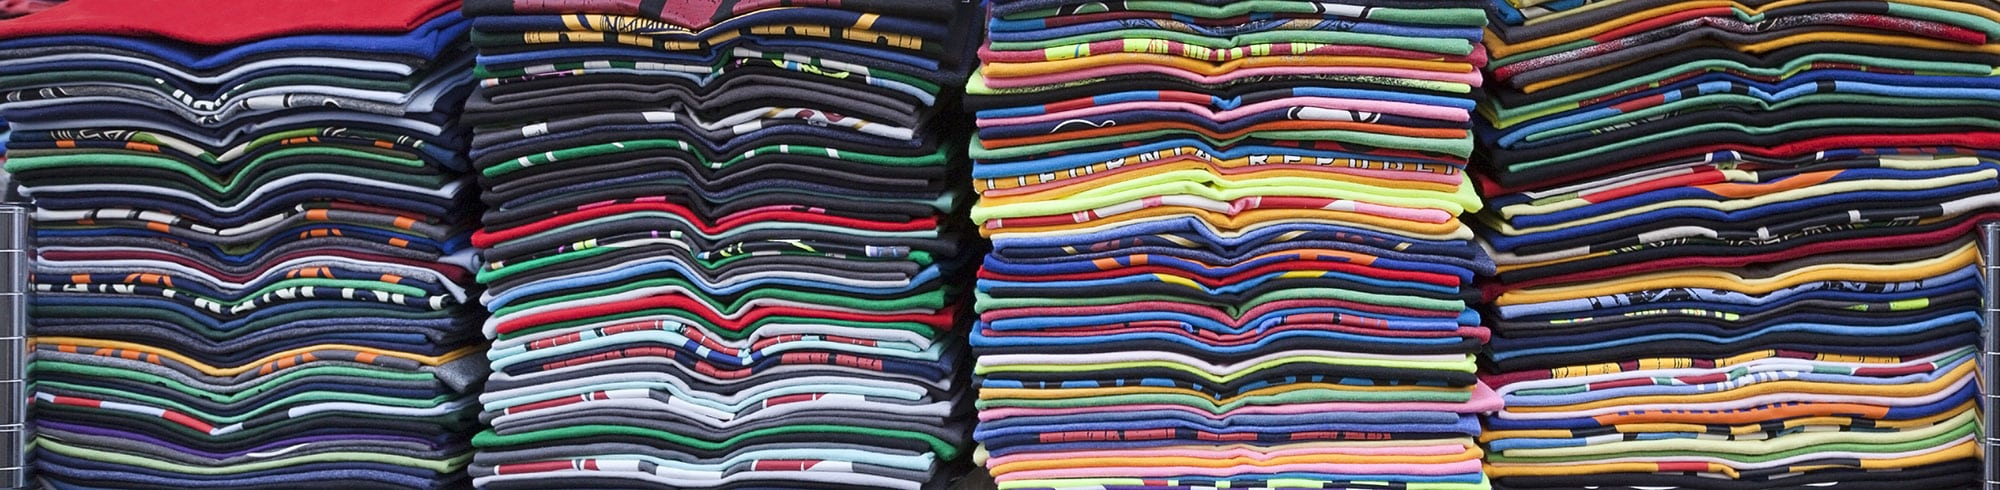 Screen printed t shirts wholesale contract screen printing for T shirt screen printing dallas tx